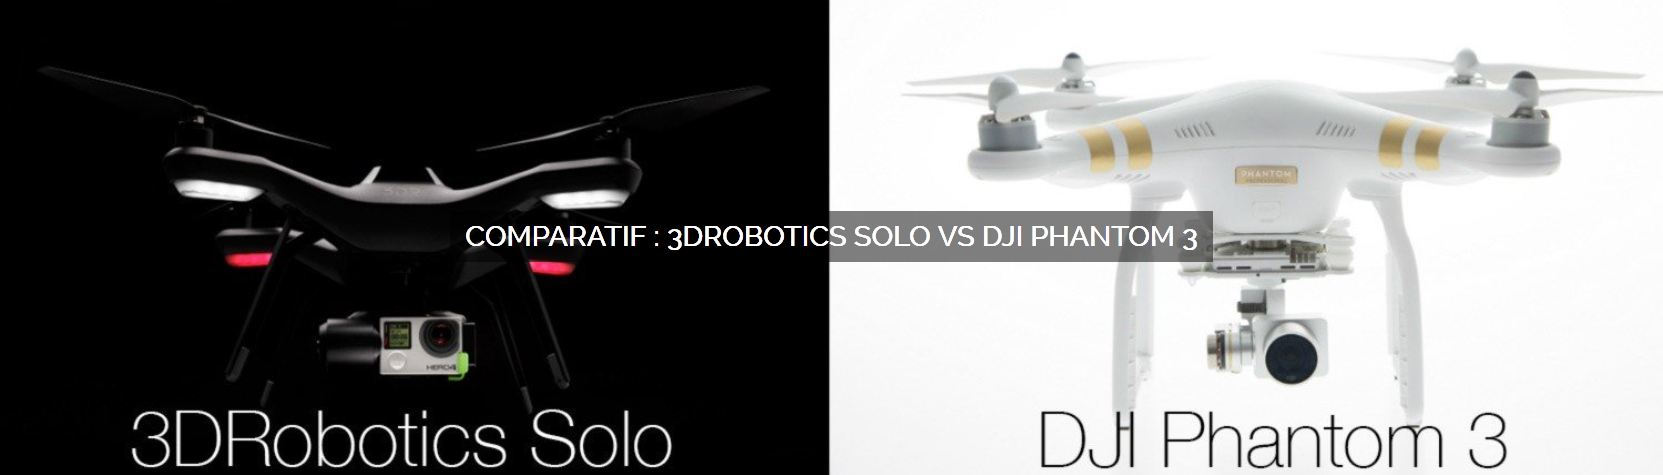 solo-3drobotics-vs-phantom3-dji_escadrone